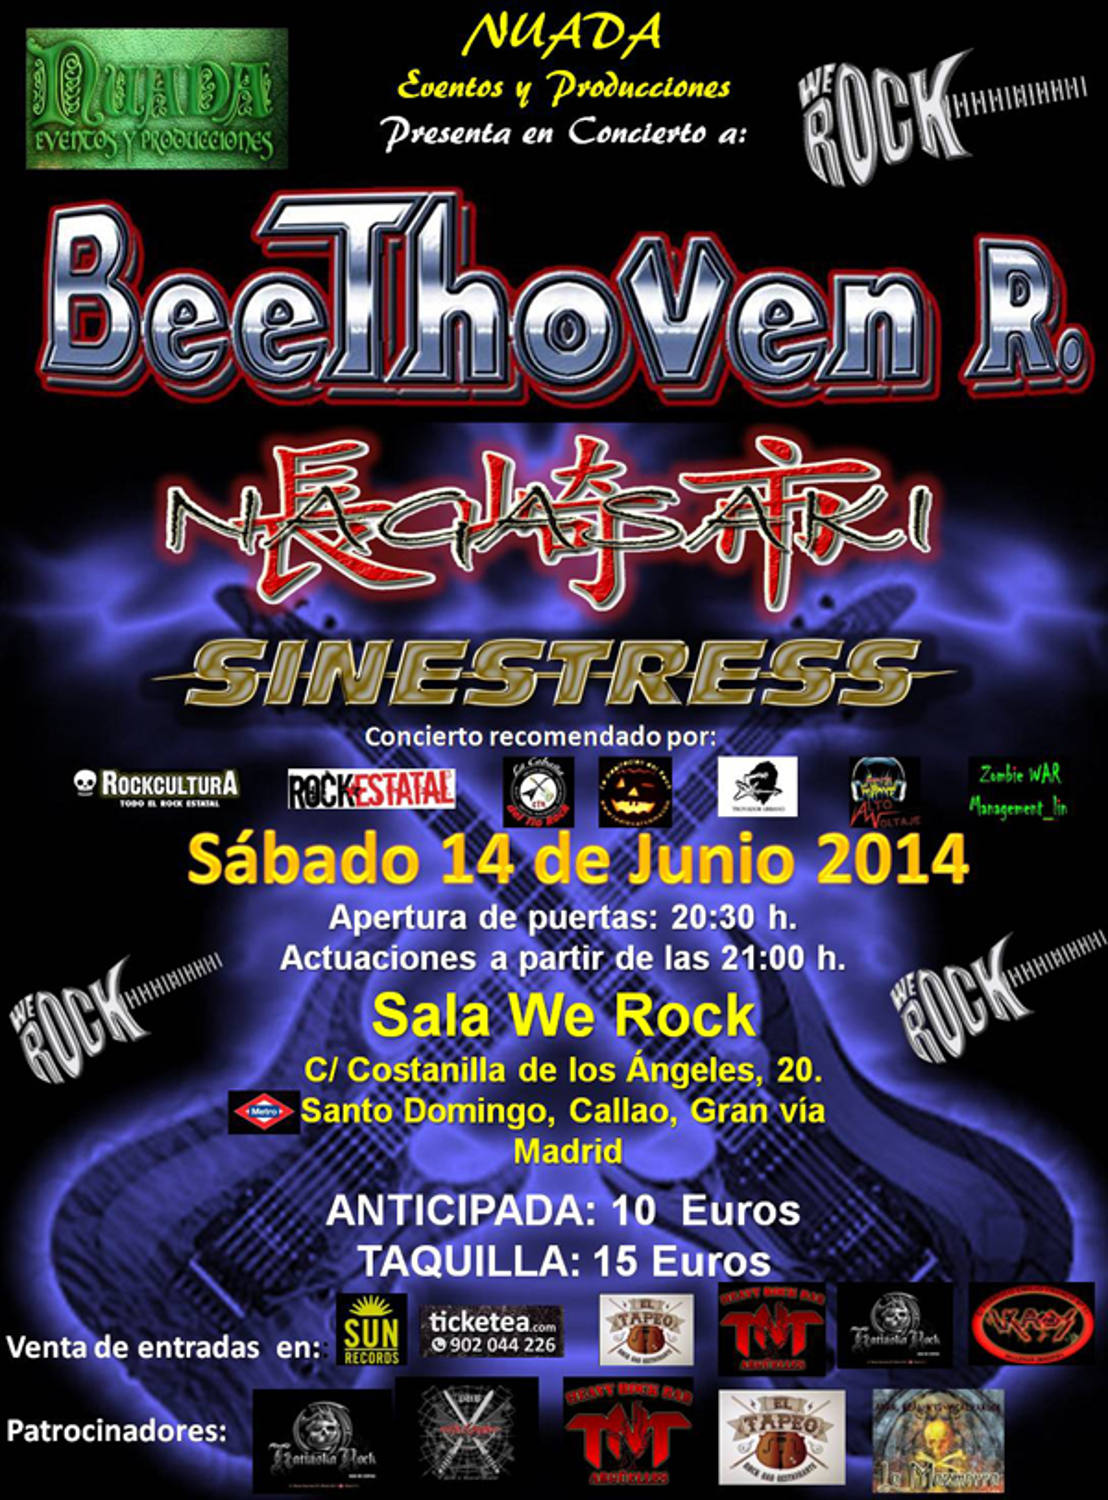 beethoven r